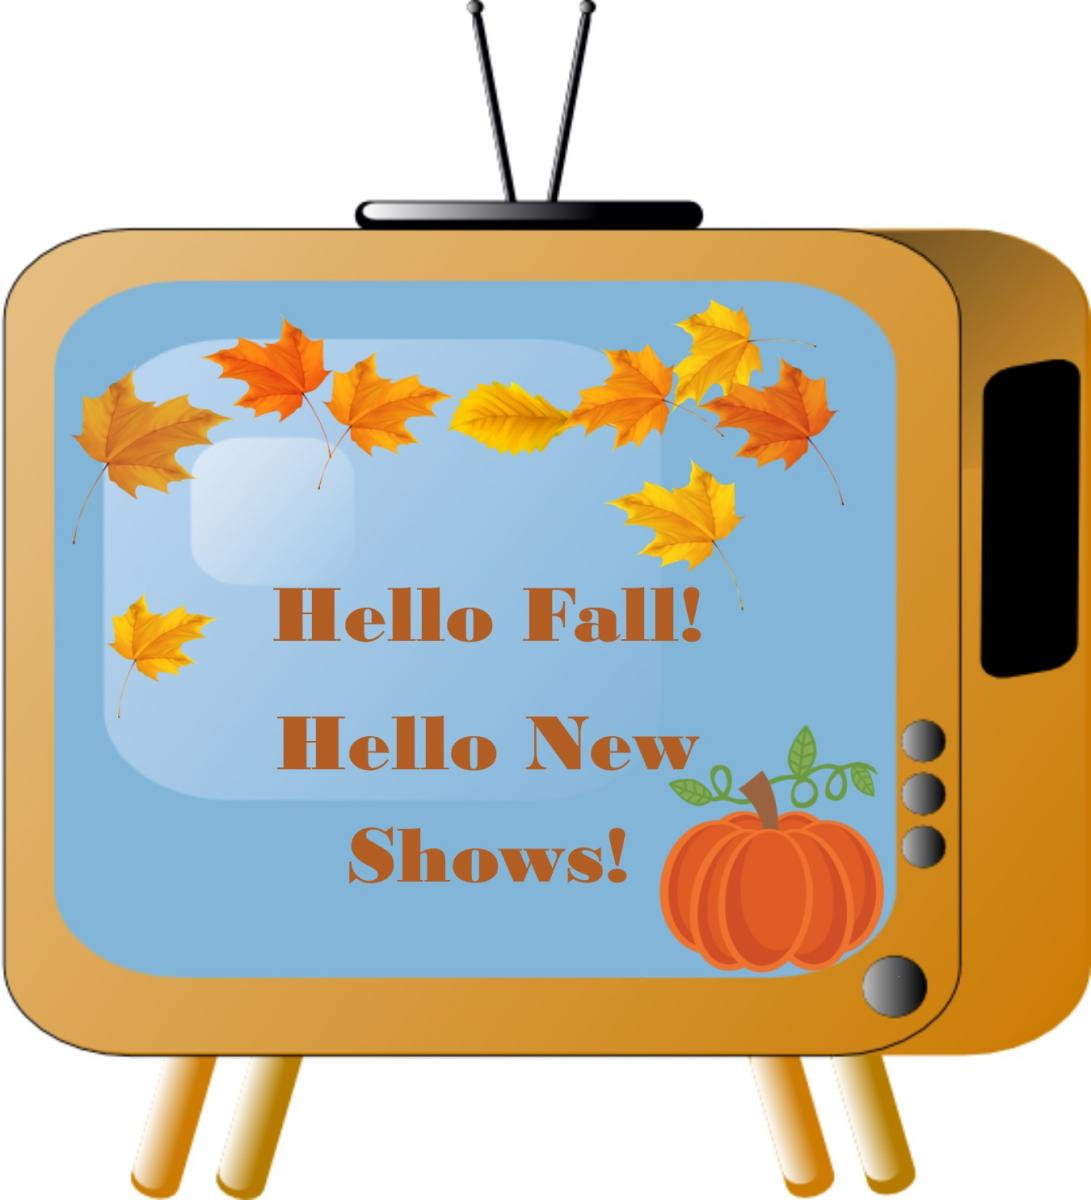 Hello Fall, Hello New Television Shows - my favorites with author Valerie Biel